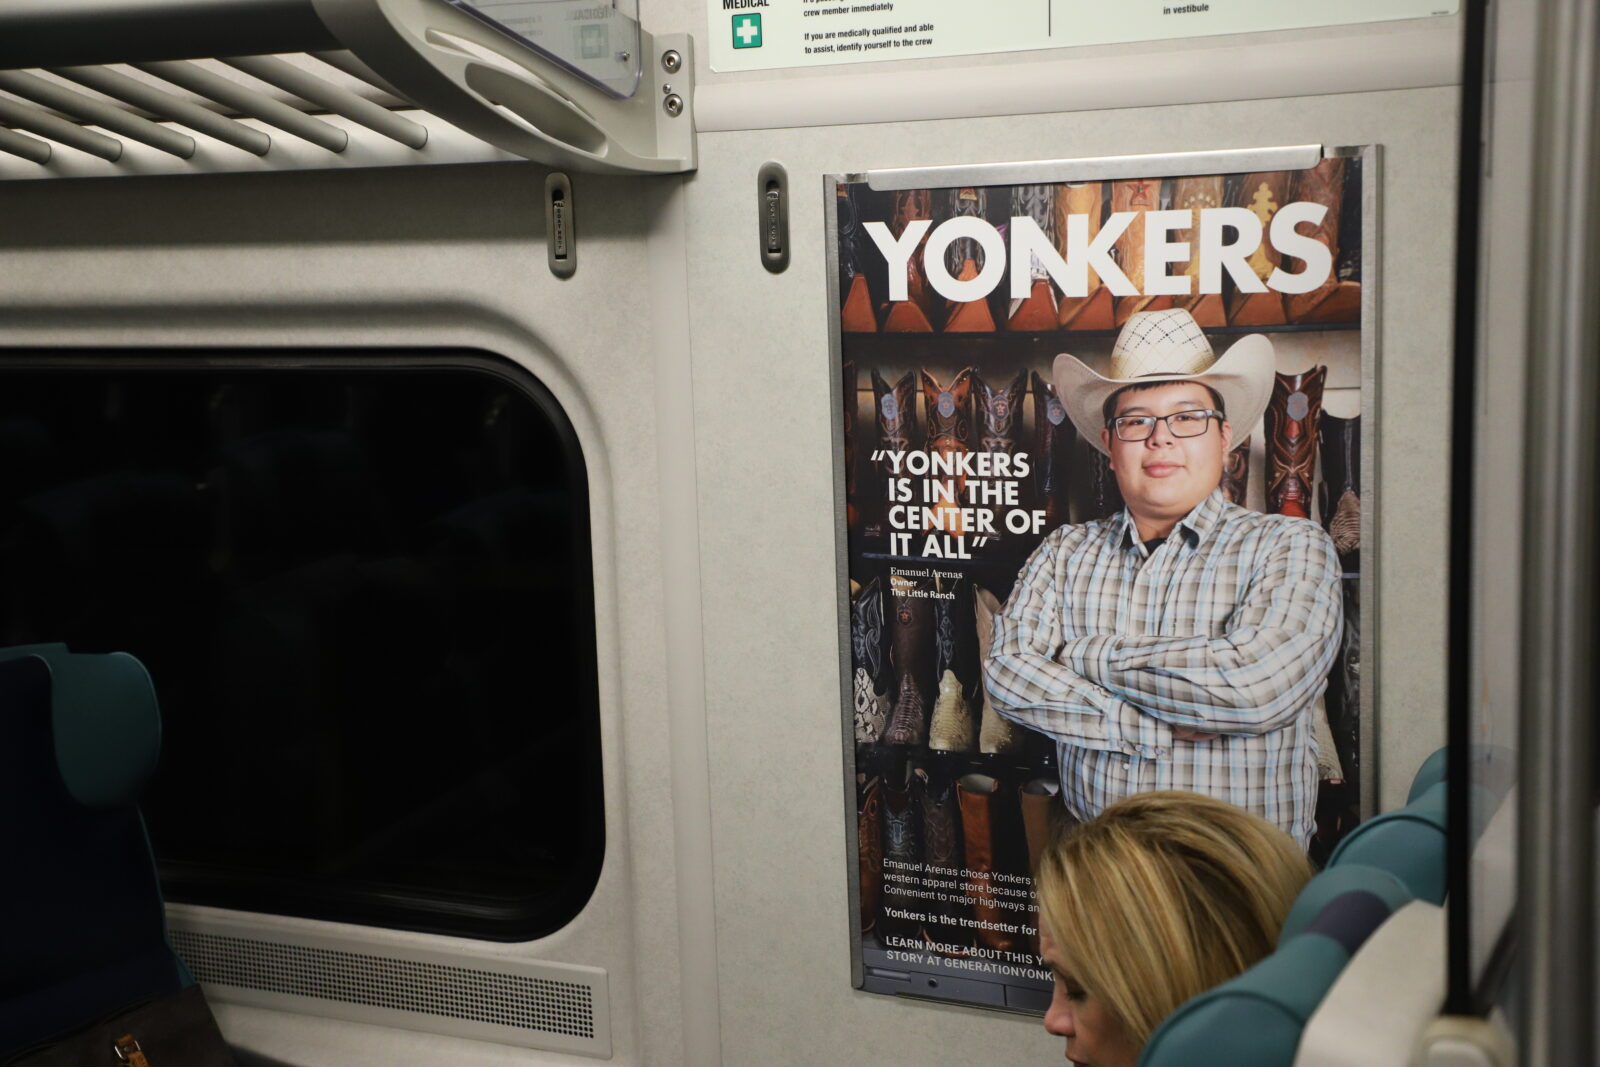 Generation Yonkers Rail Interior Car Card Advertising Campaign